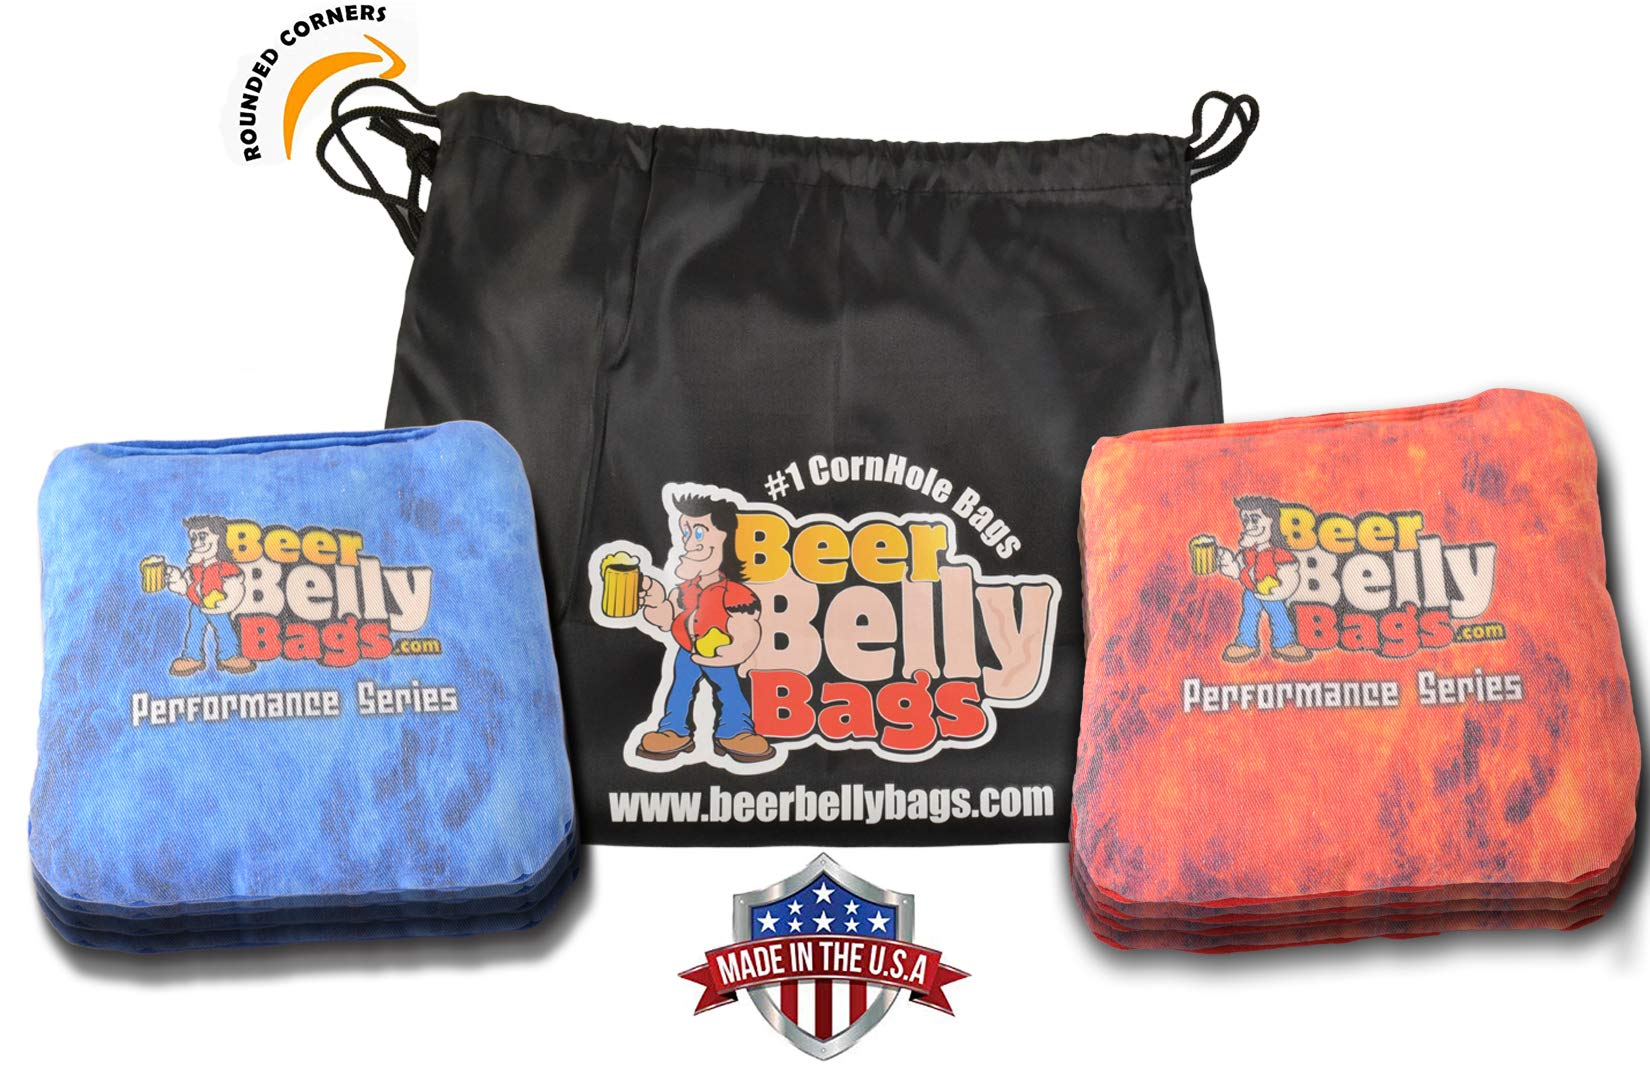 Beer Belly Bags Cornhole - Performance Series 8 Bags ACL Approved Resin Filled - Double Sided - Sticky Side | Slick Side (Red/Blue Fire) by Beer Belly Bags